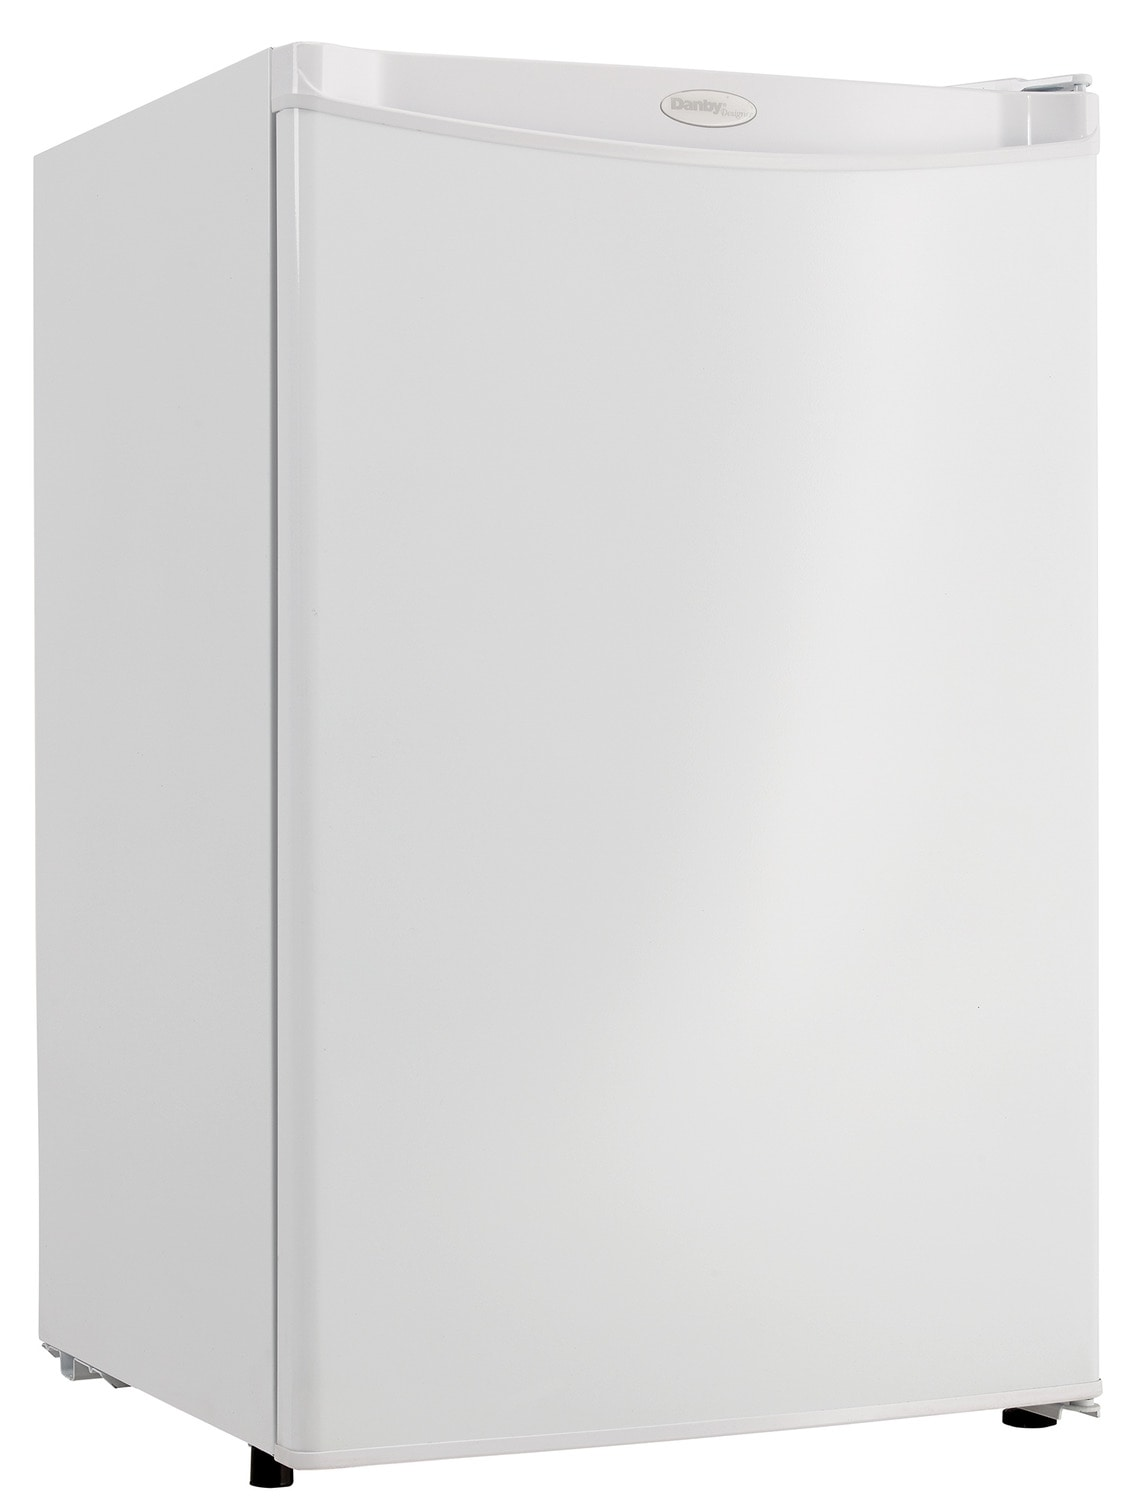 Refrigerators and Freezers - Danby White Compact Refrigerator (4.4 Cu. Ft.) - DAR044A4WDD